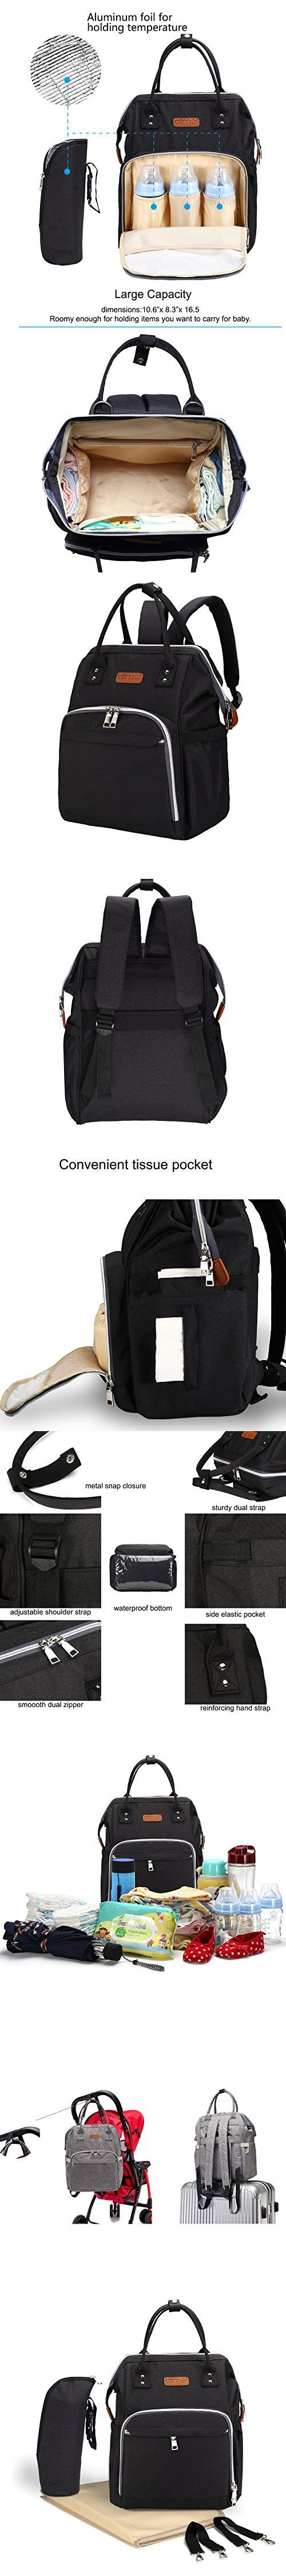 Diaper Bag Multi-Function Waterproof Travel Backpack Nappy Bags for Baby Care, Large Capacity with Baby Stroller Straps, Changing Pad & Insulated Pockets, Stylish and Durable for Mom/Dad (Black)